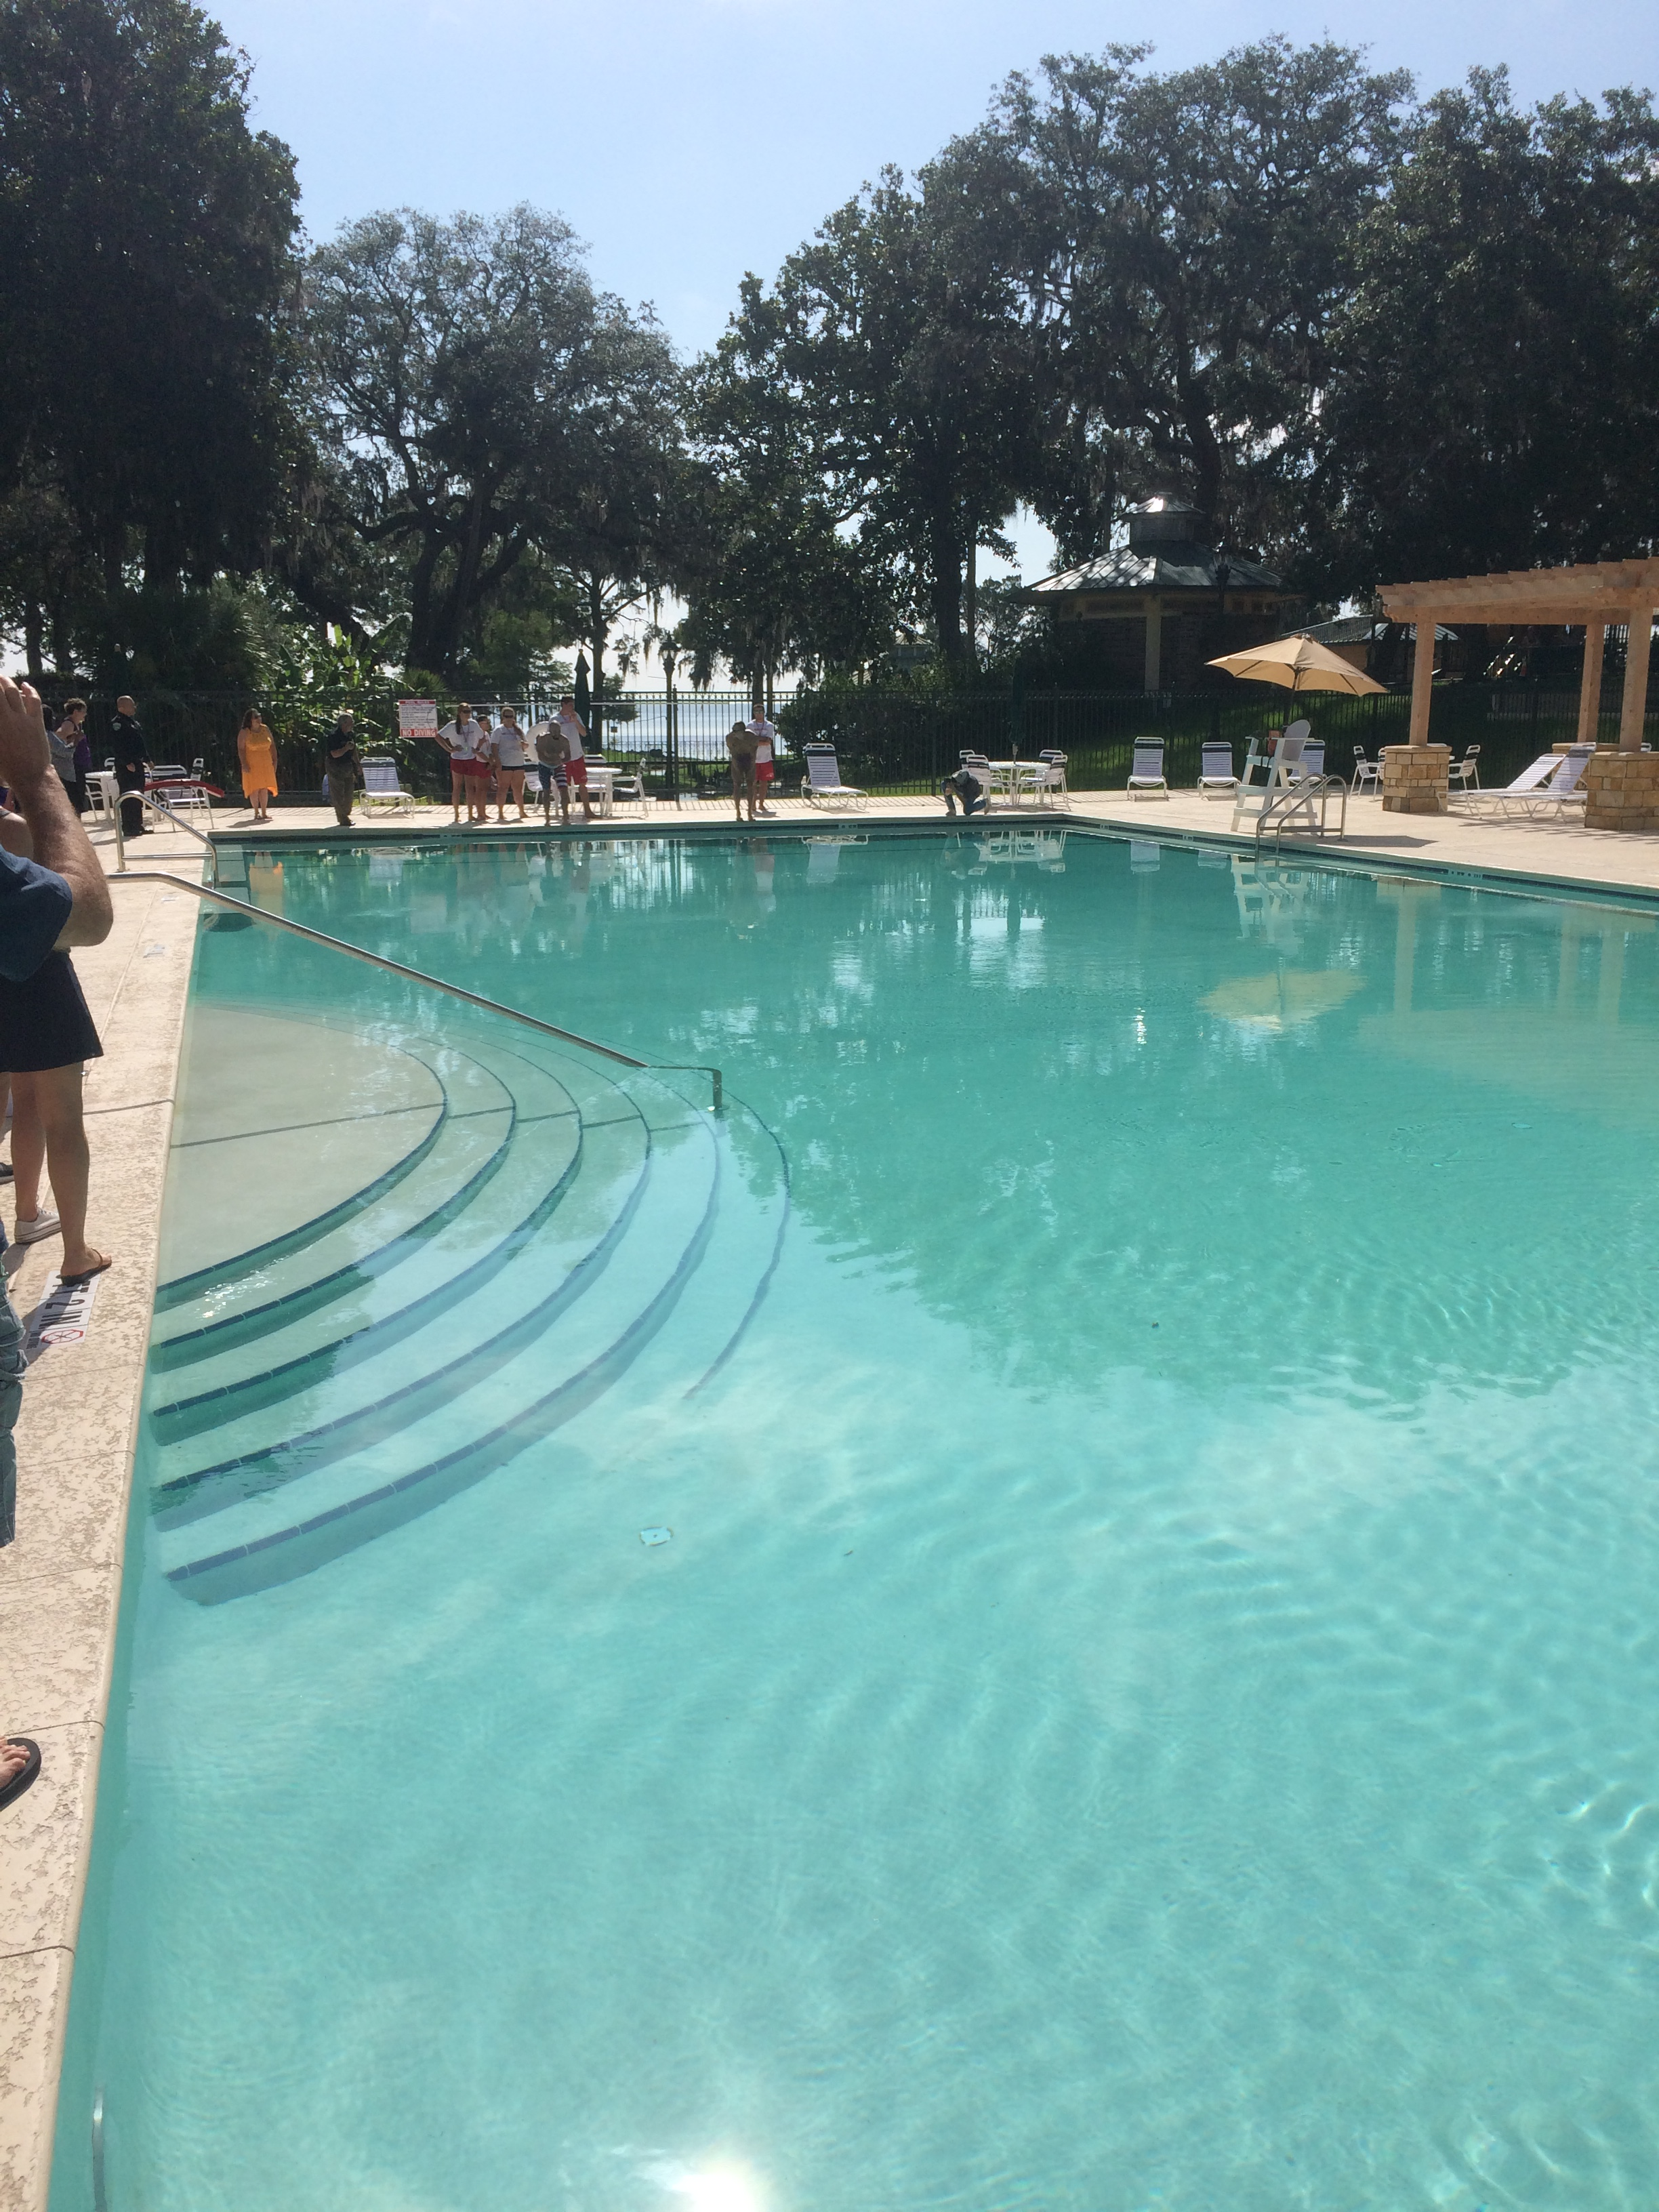 Photo of people gathered around the new Spring Park pool in Green Cove Springs